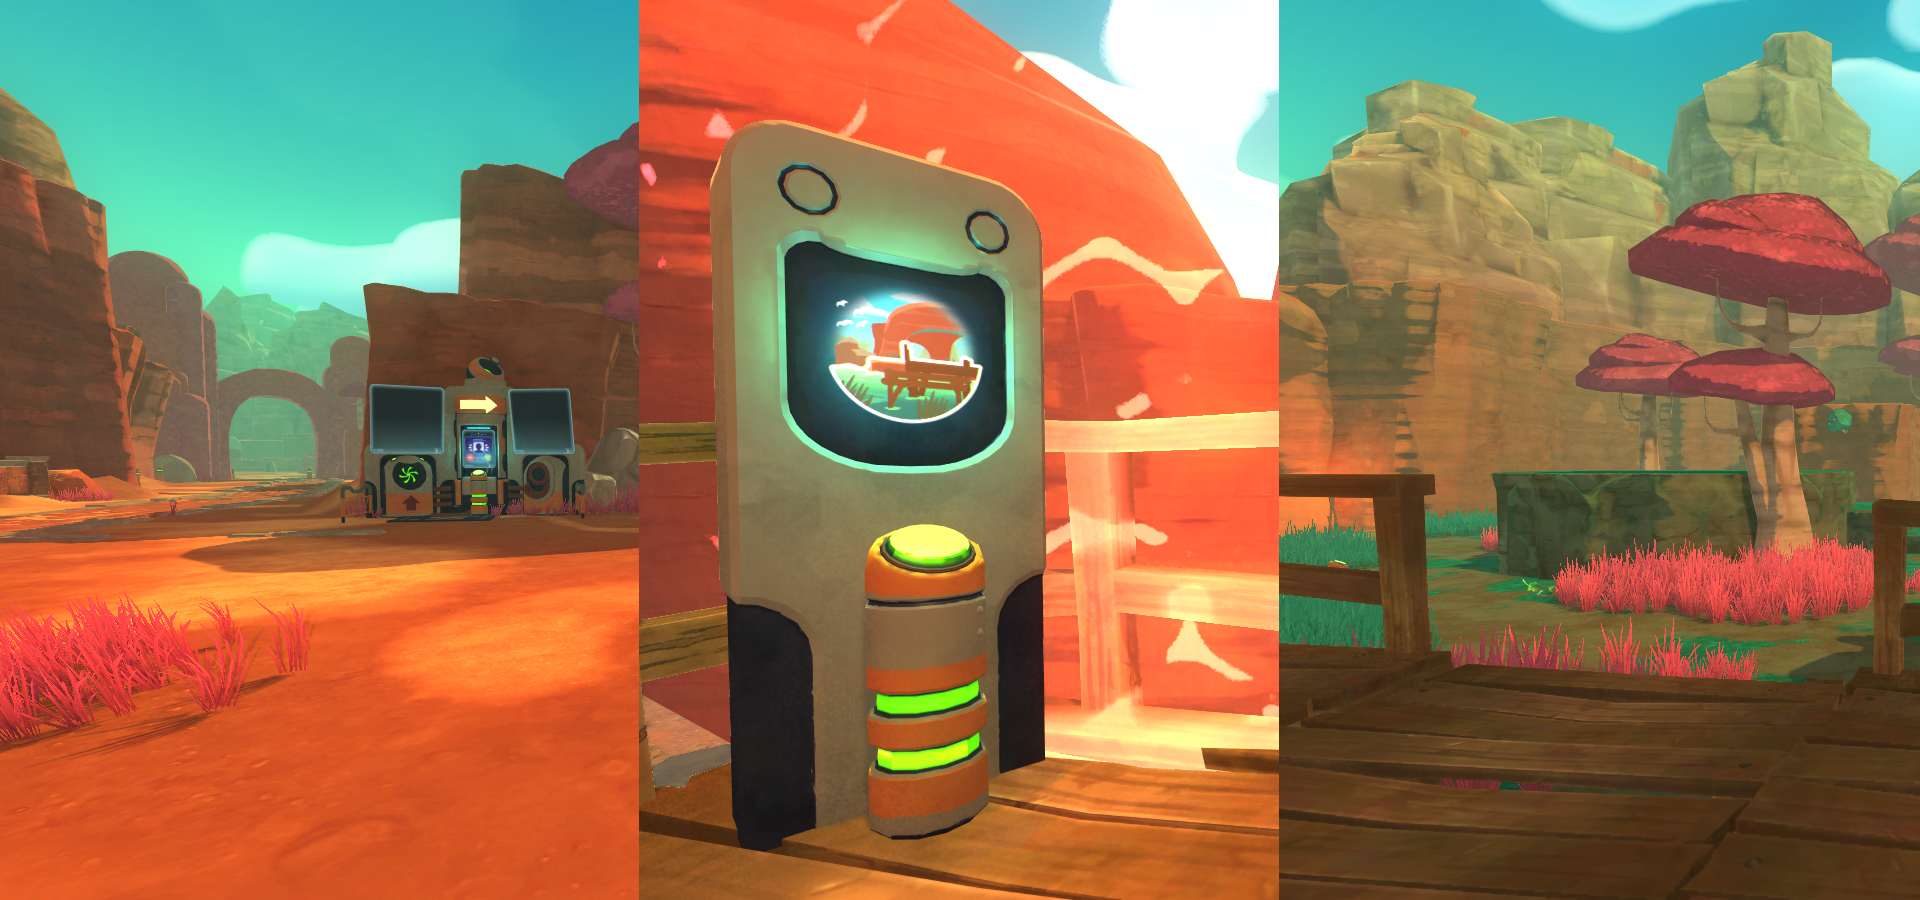 The game has a lovely low-poly look - filled with rich colours and cute slimes!